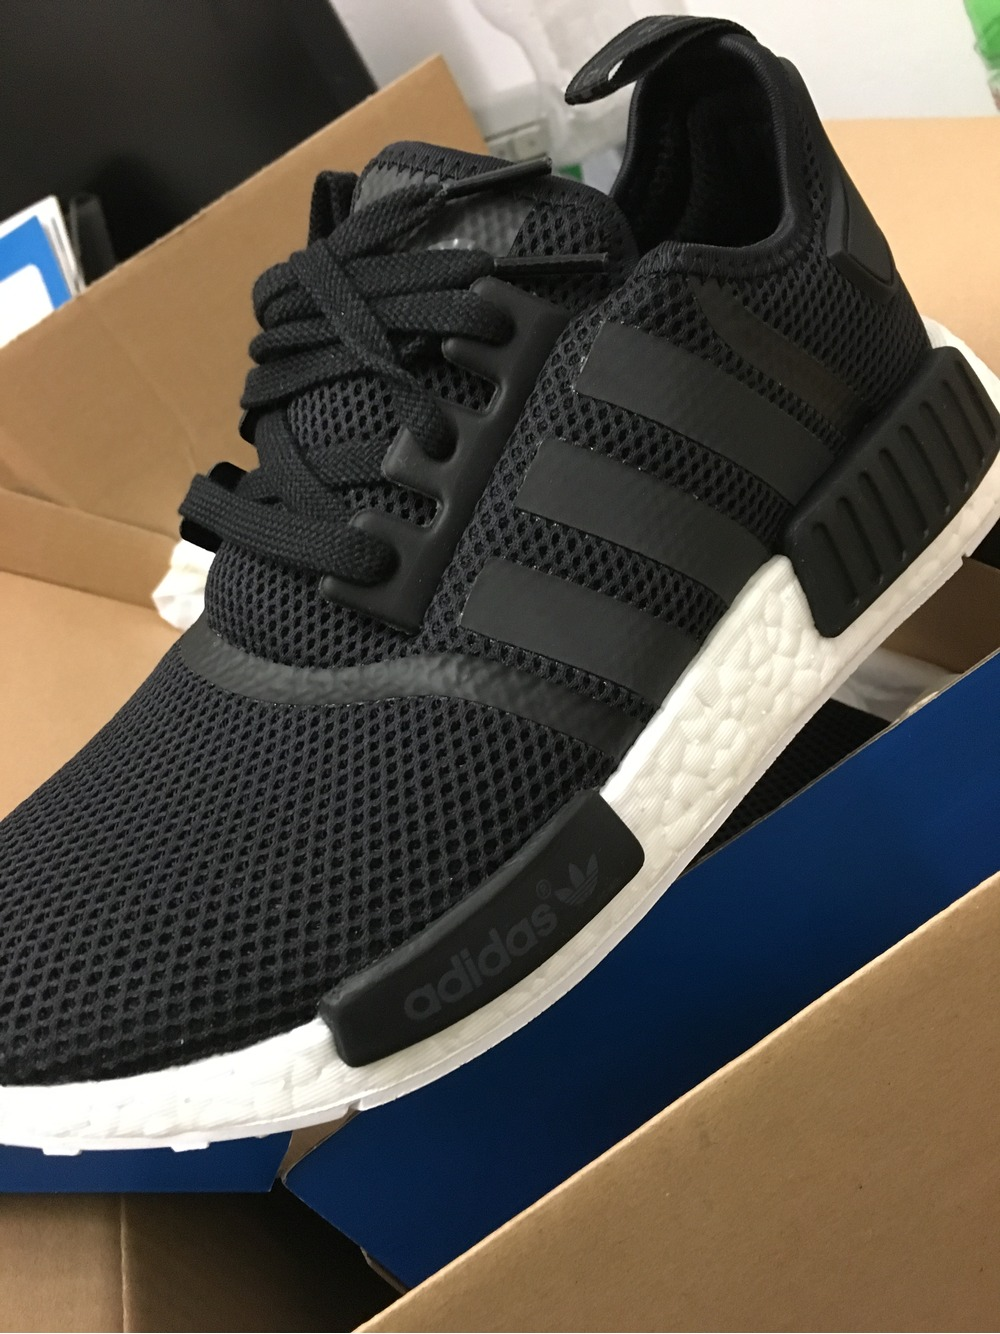 Nmd r1 gray tri color Size 11 for sale in Frisco, TX: Buy